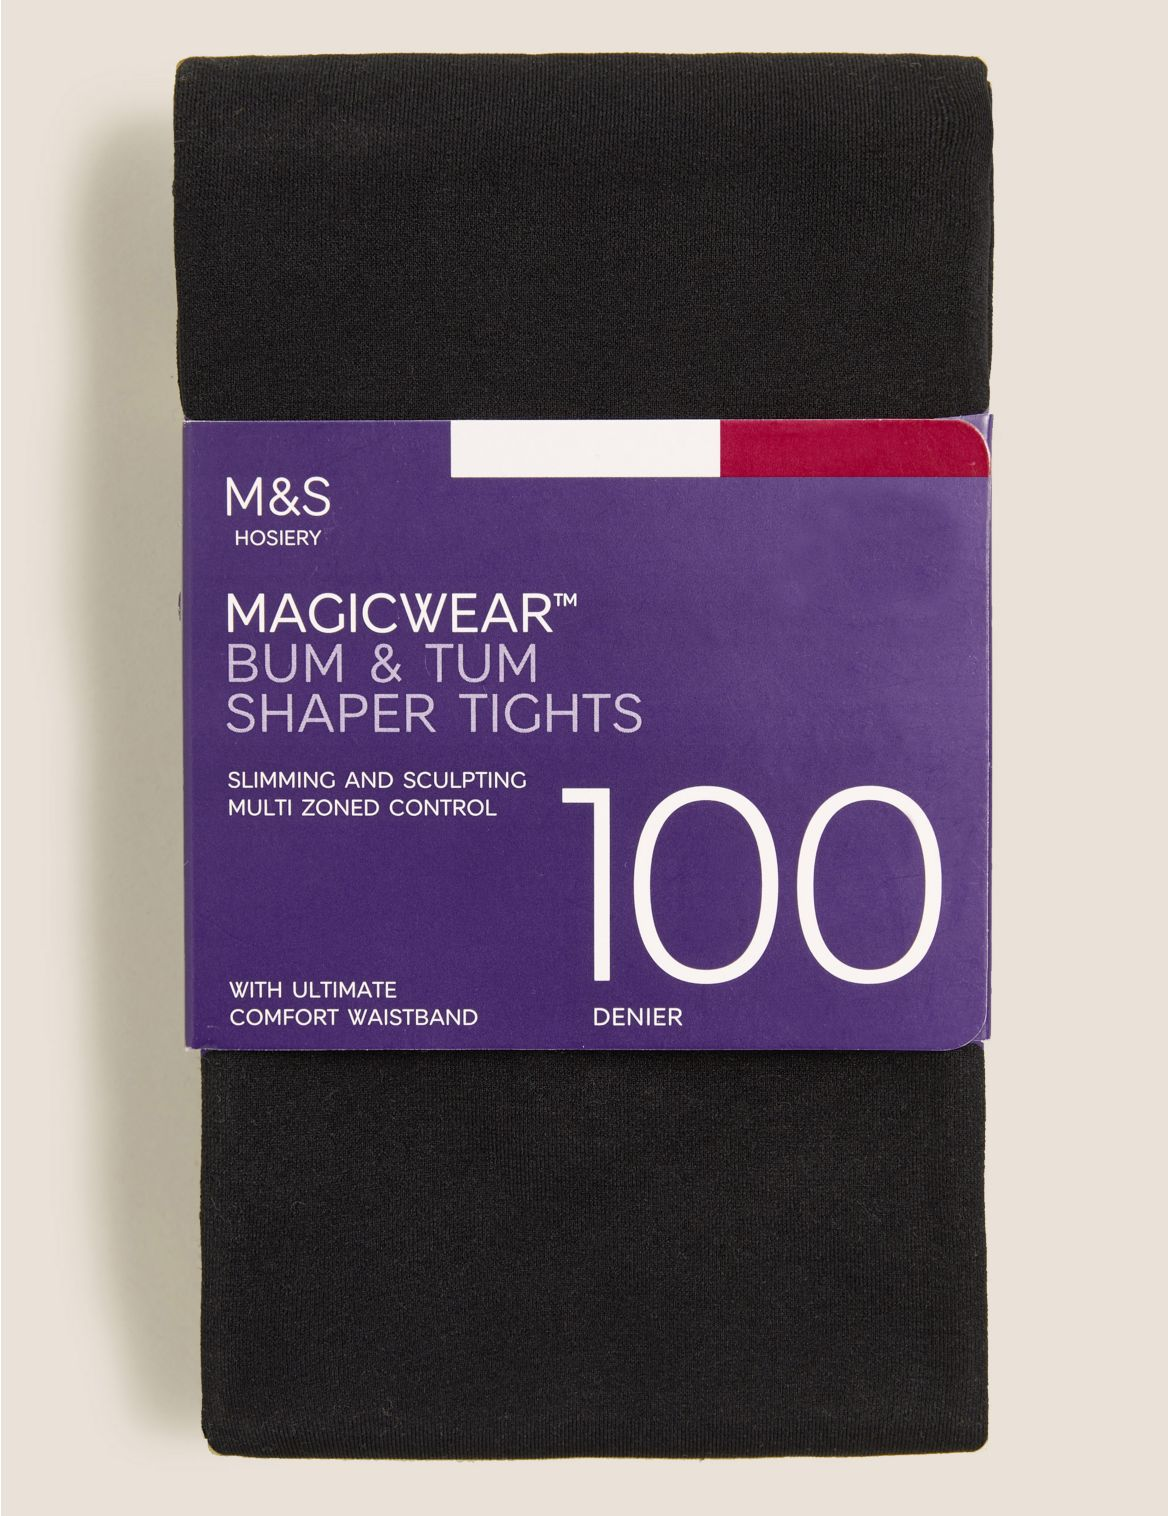 100 Denier Magicwear™ Shaper Tights black